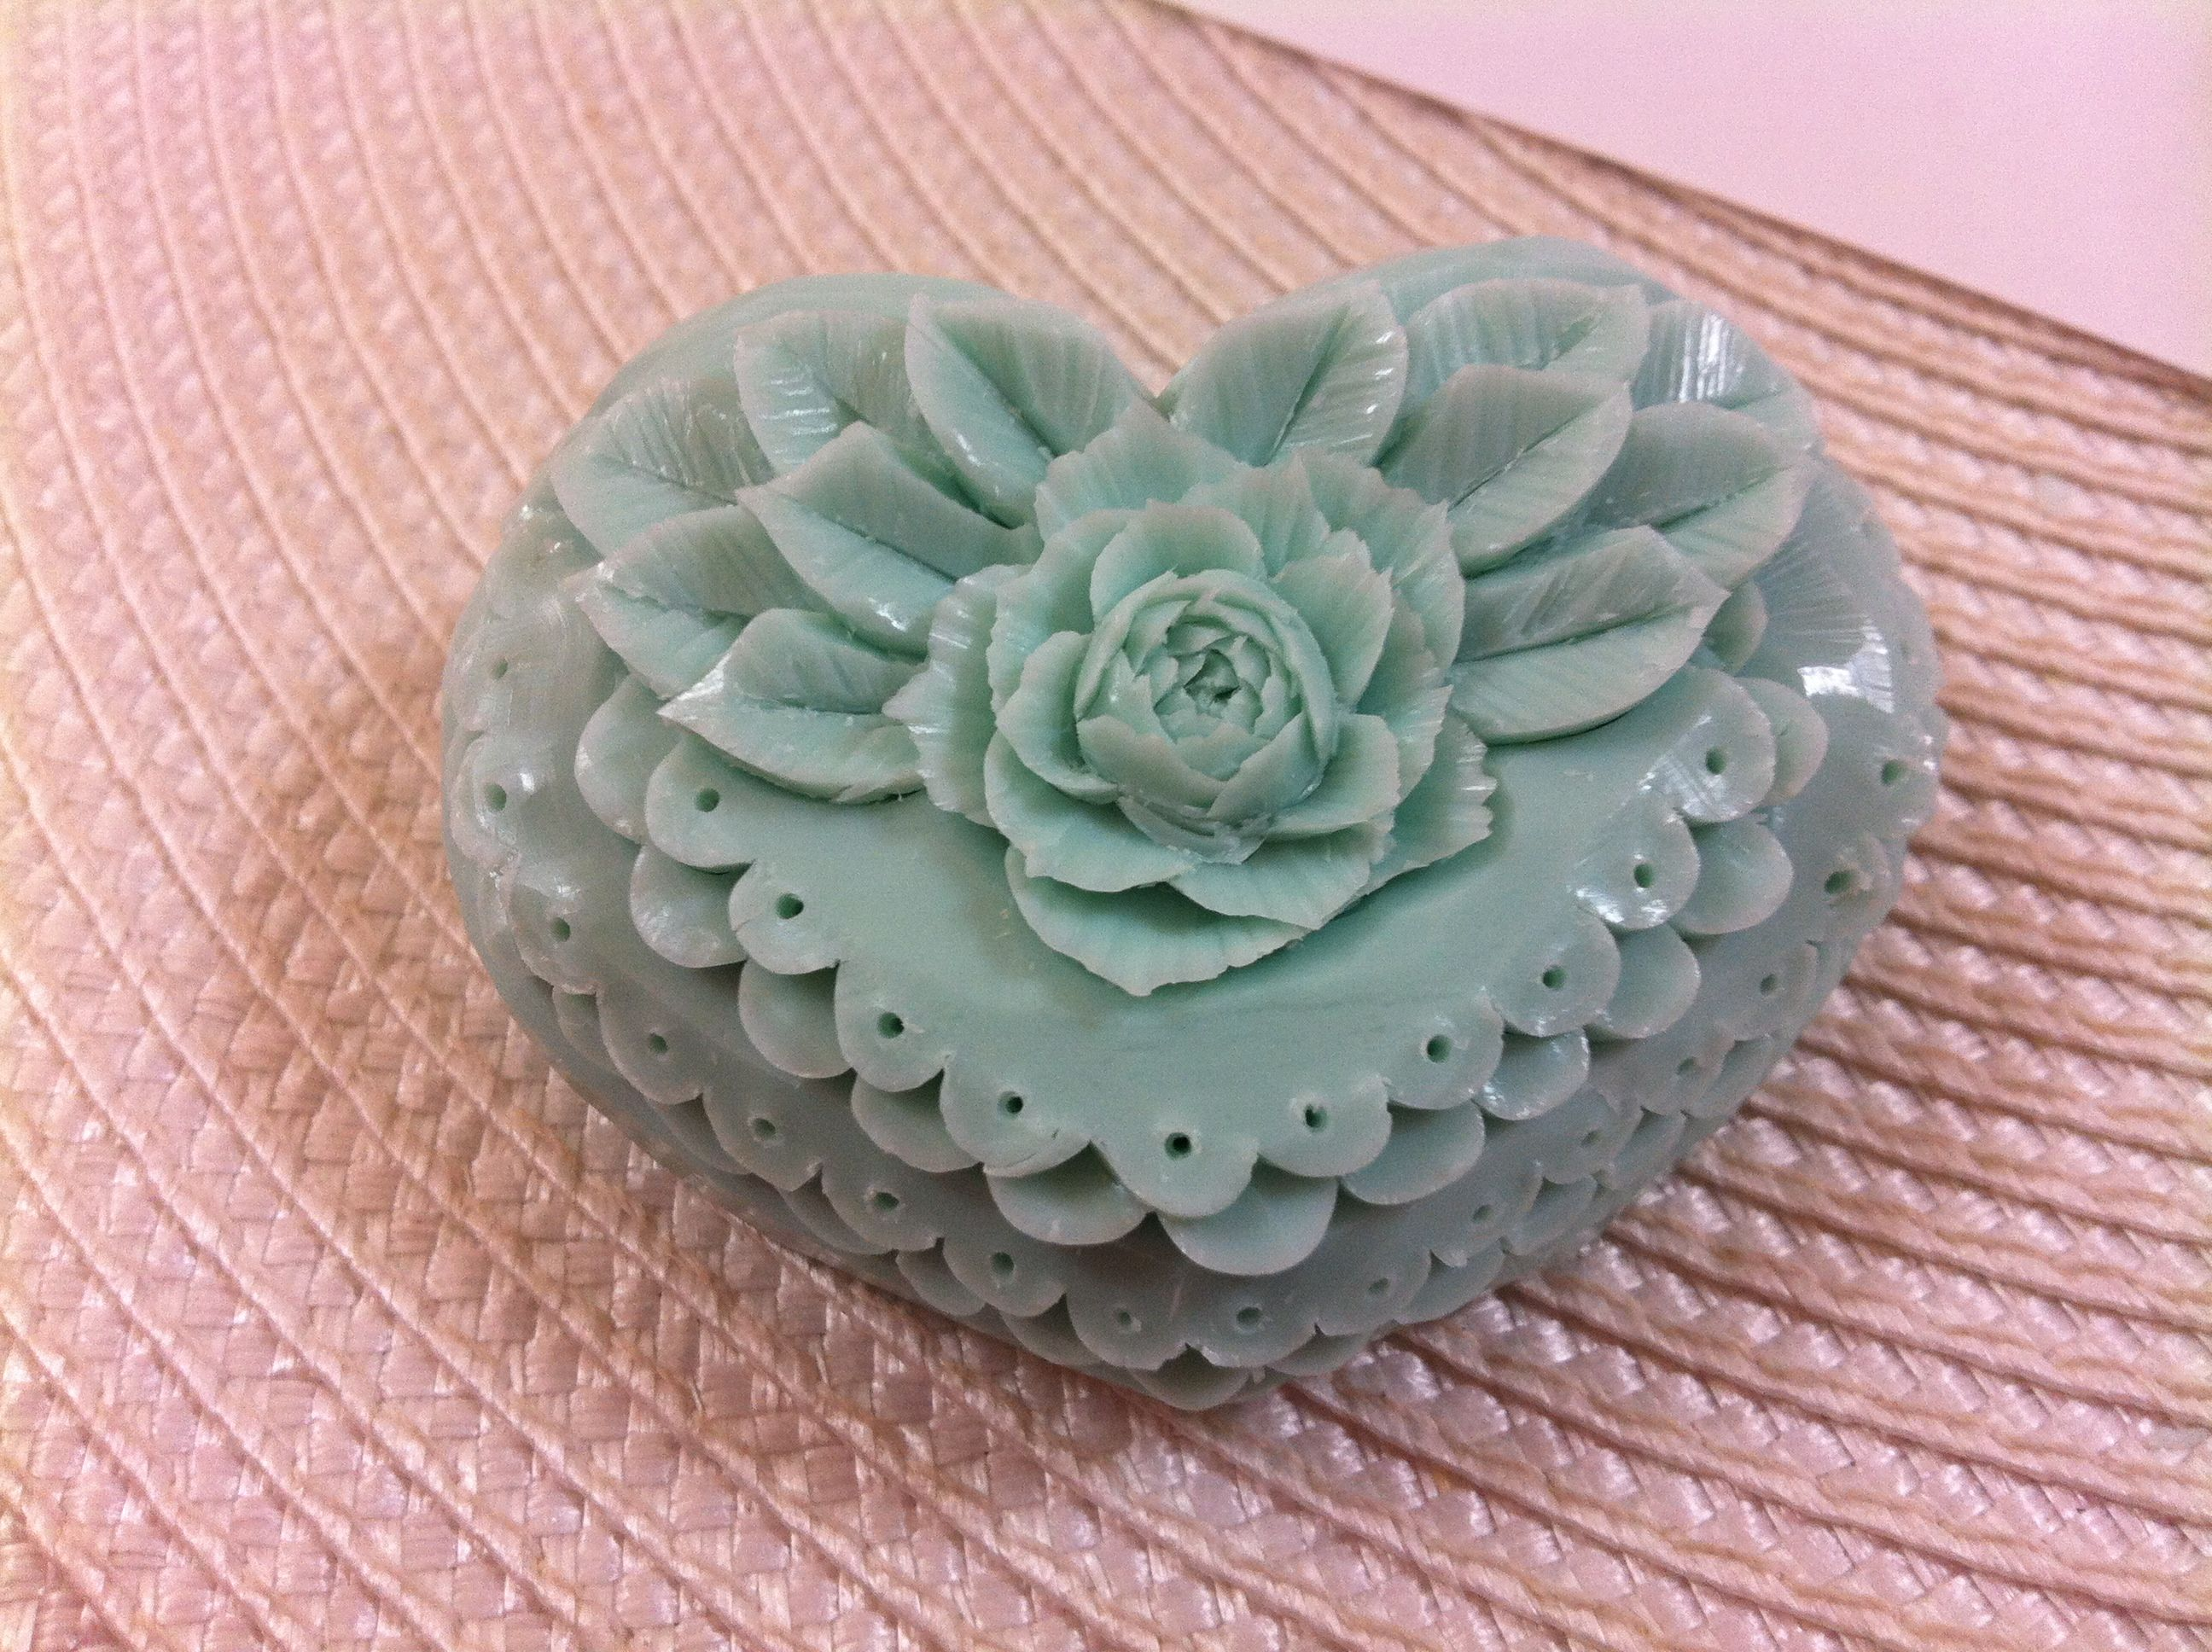 Soap carving fun pinterest